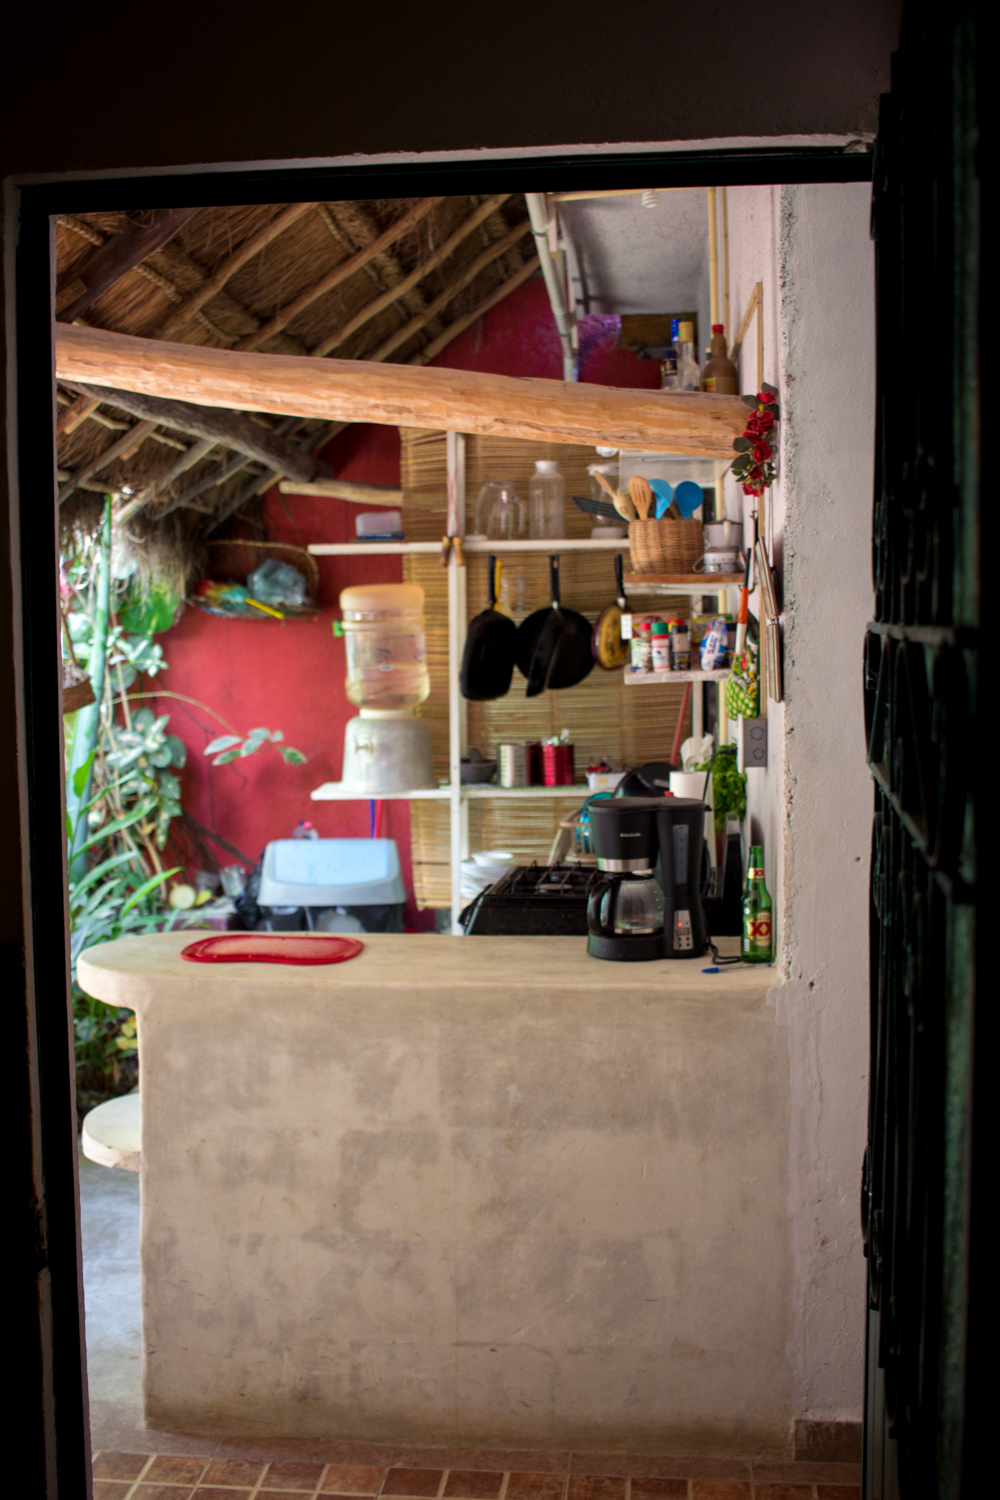 Outdoor kitchen at the Airbnb in Tulum, Mexico